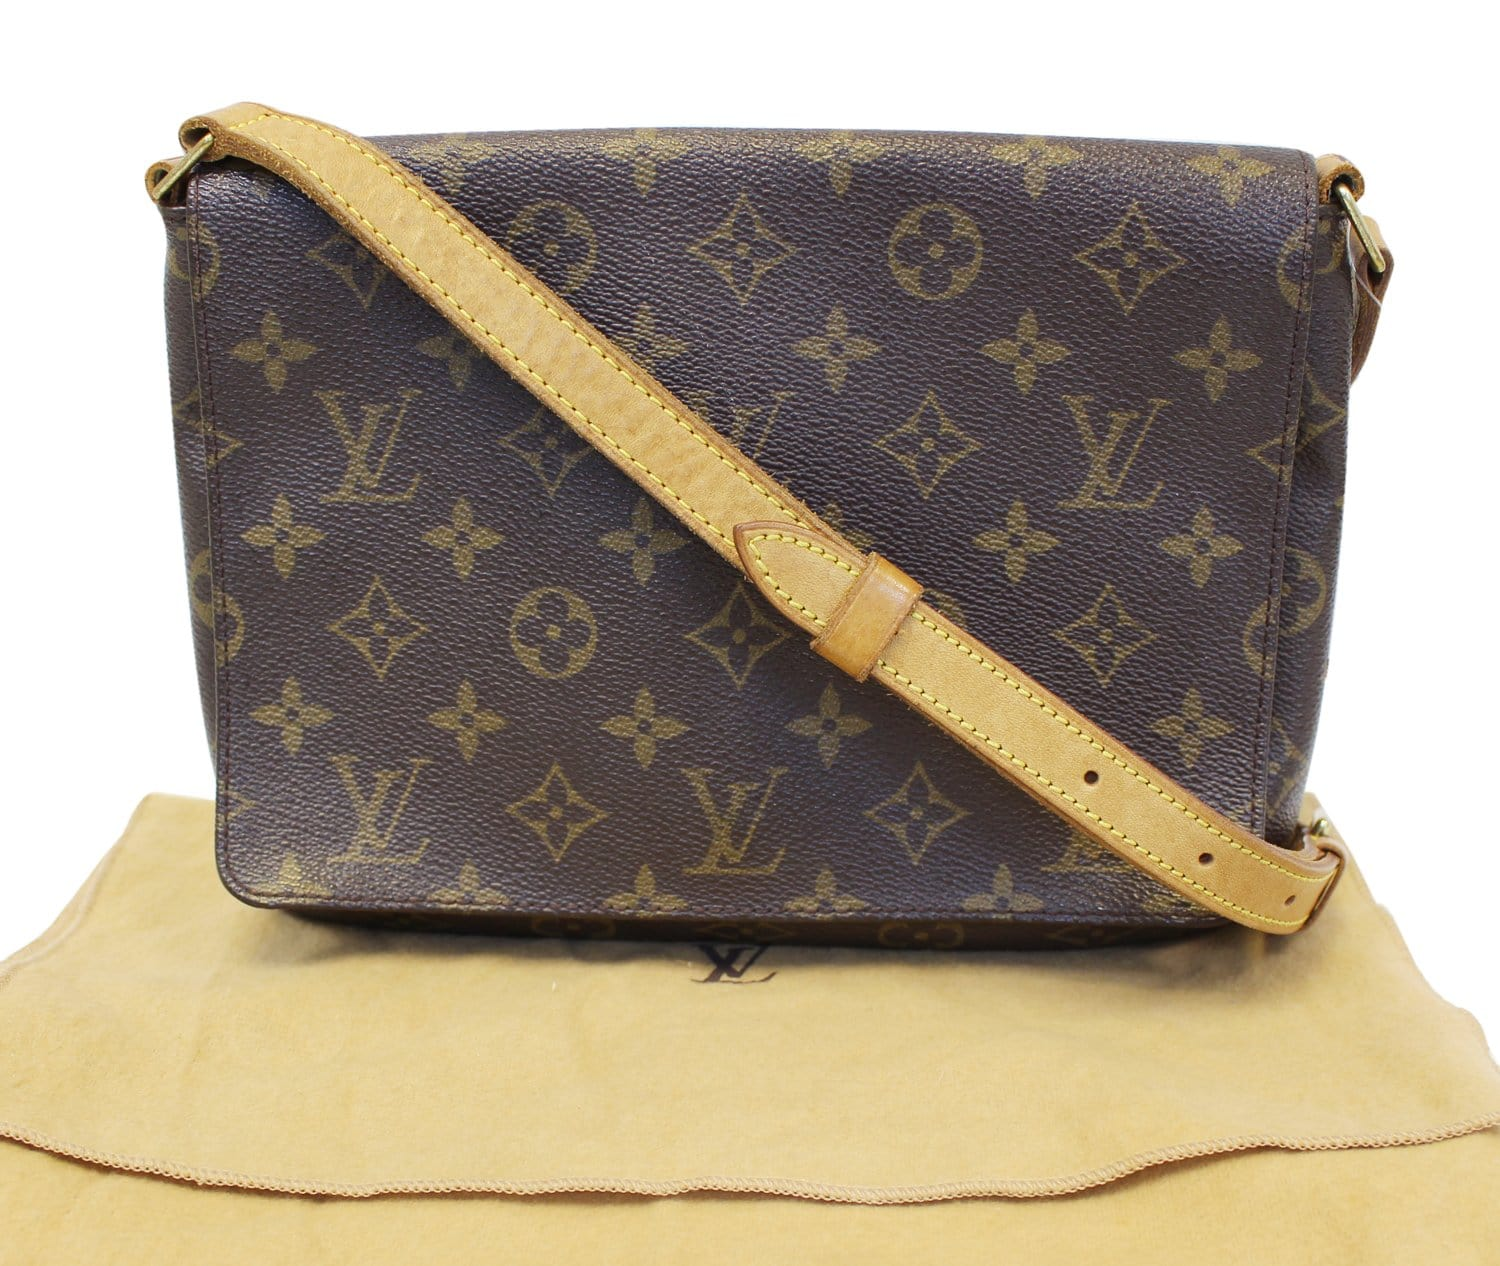 290d75045be9 LOUIS VUITTON Monogram Canvas Musette Tango Shoulder Crossbody Bag